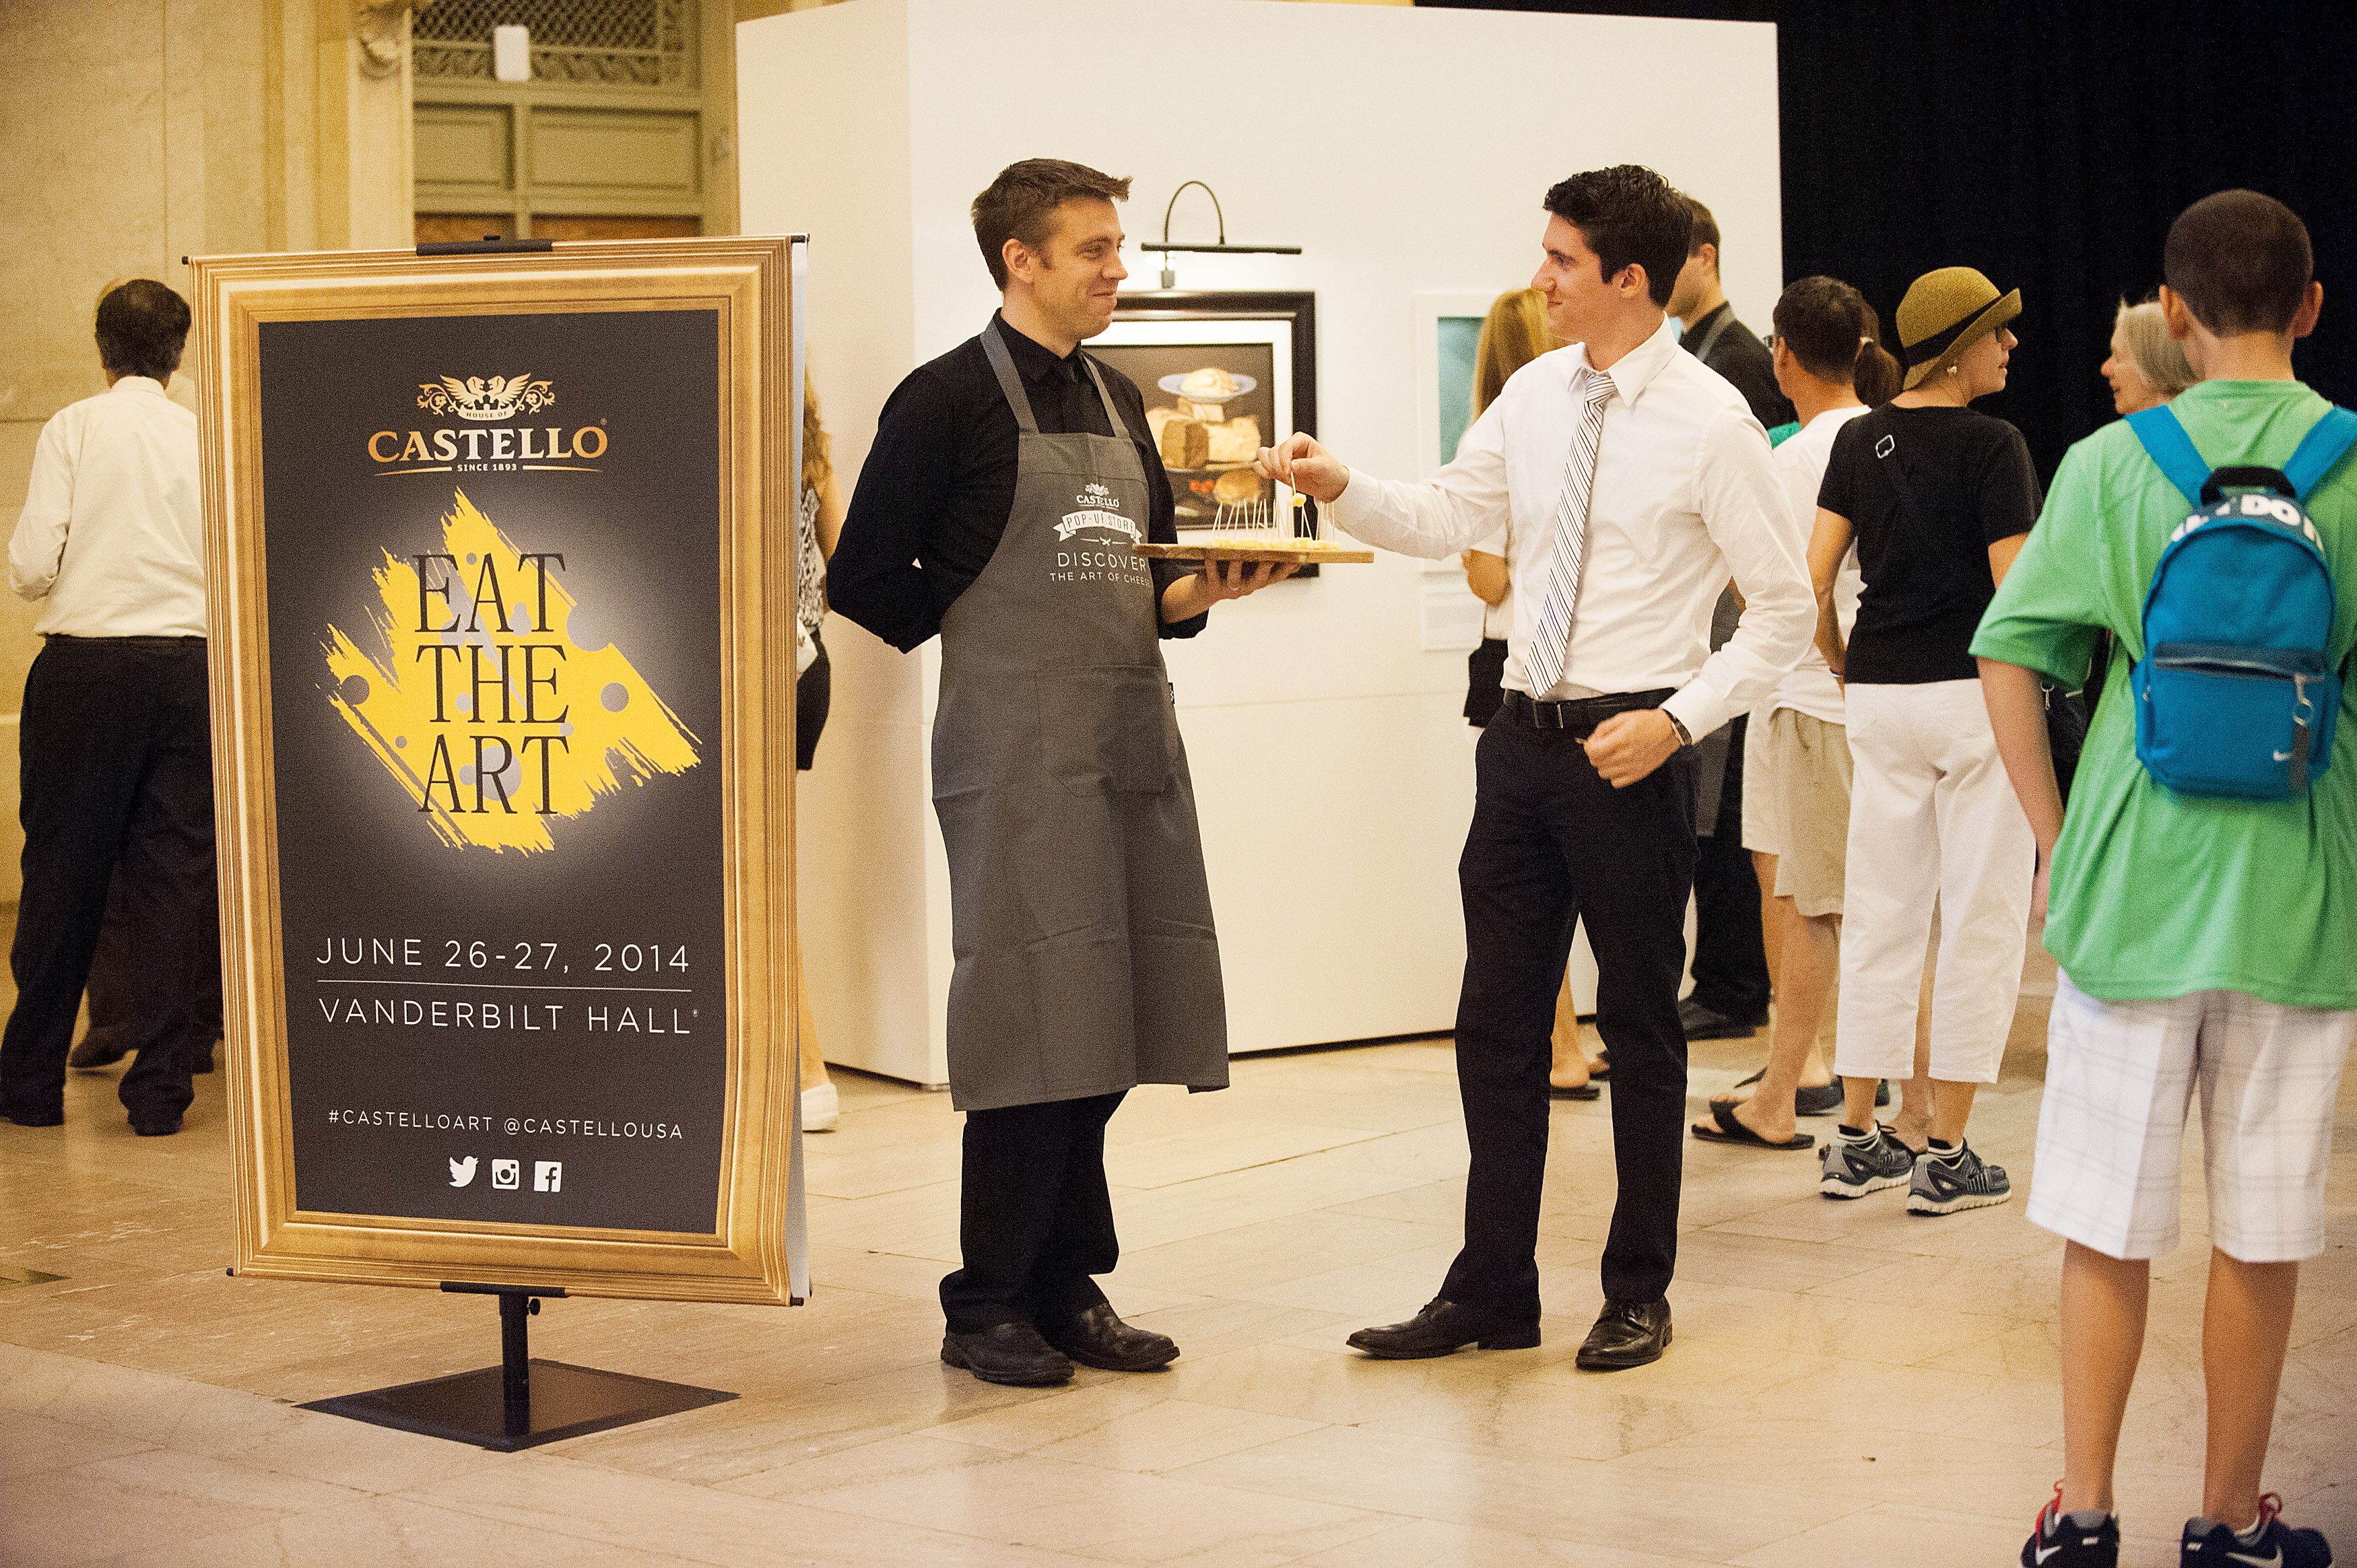 """Arla invited New Yorkers to """"Eat the Art"""" of Castello® cheese"""